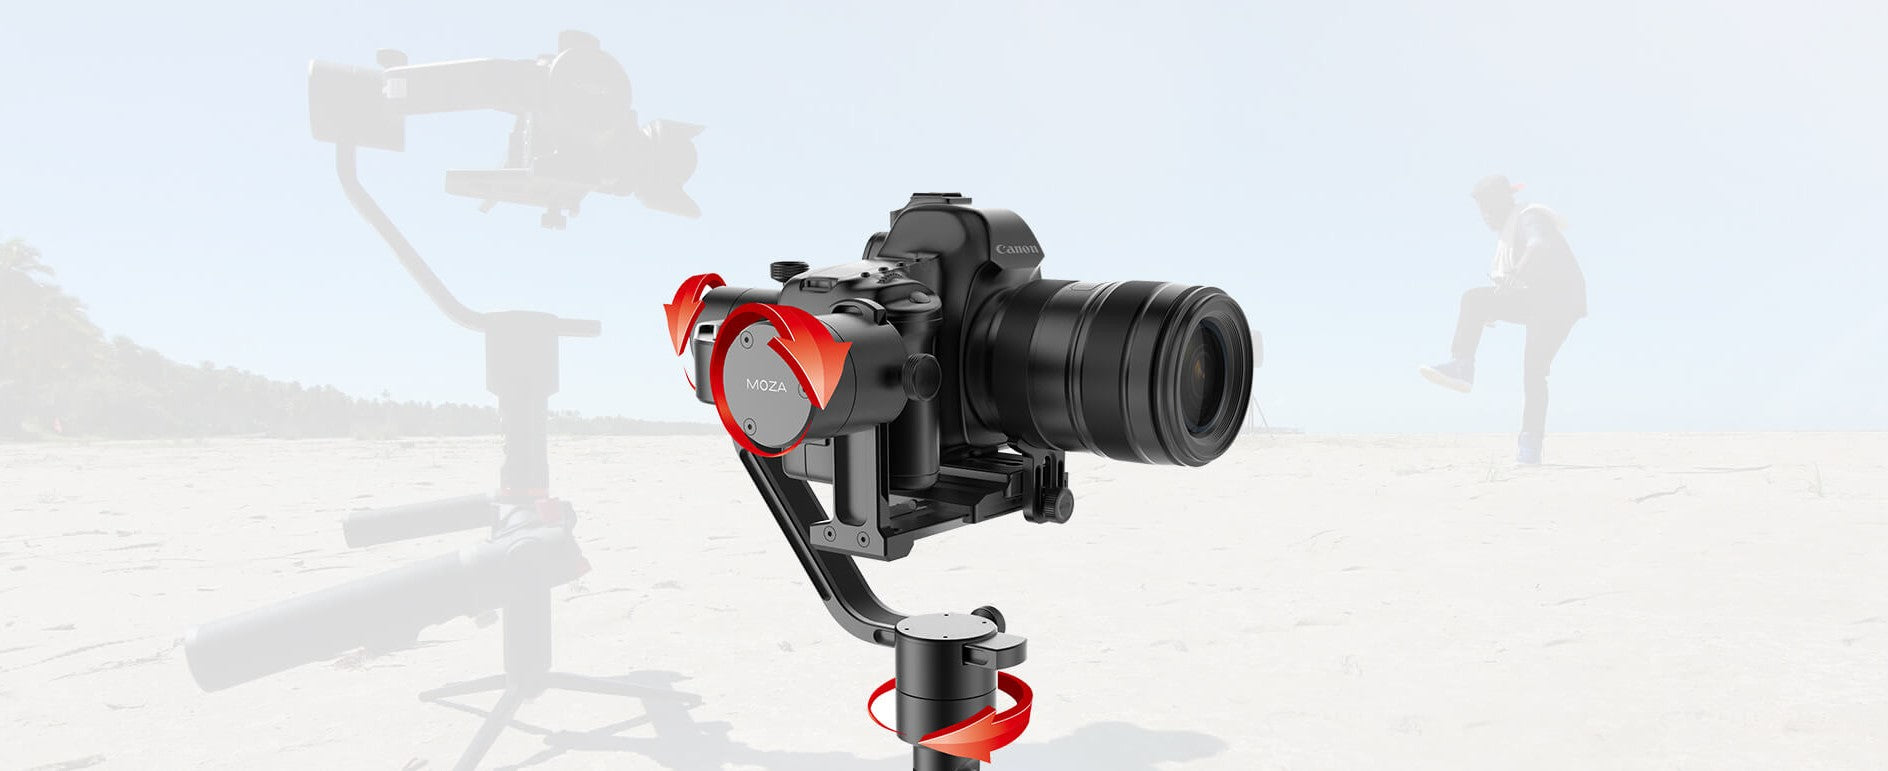 moza-air-wireless-phone-charging-gimbal-phone-camera-stabilizer-wireless-charging-full-expansion-sport-gear-mode-zoom-control-focus-control-app-function-rotation